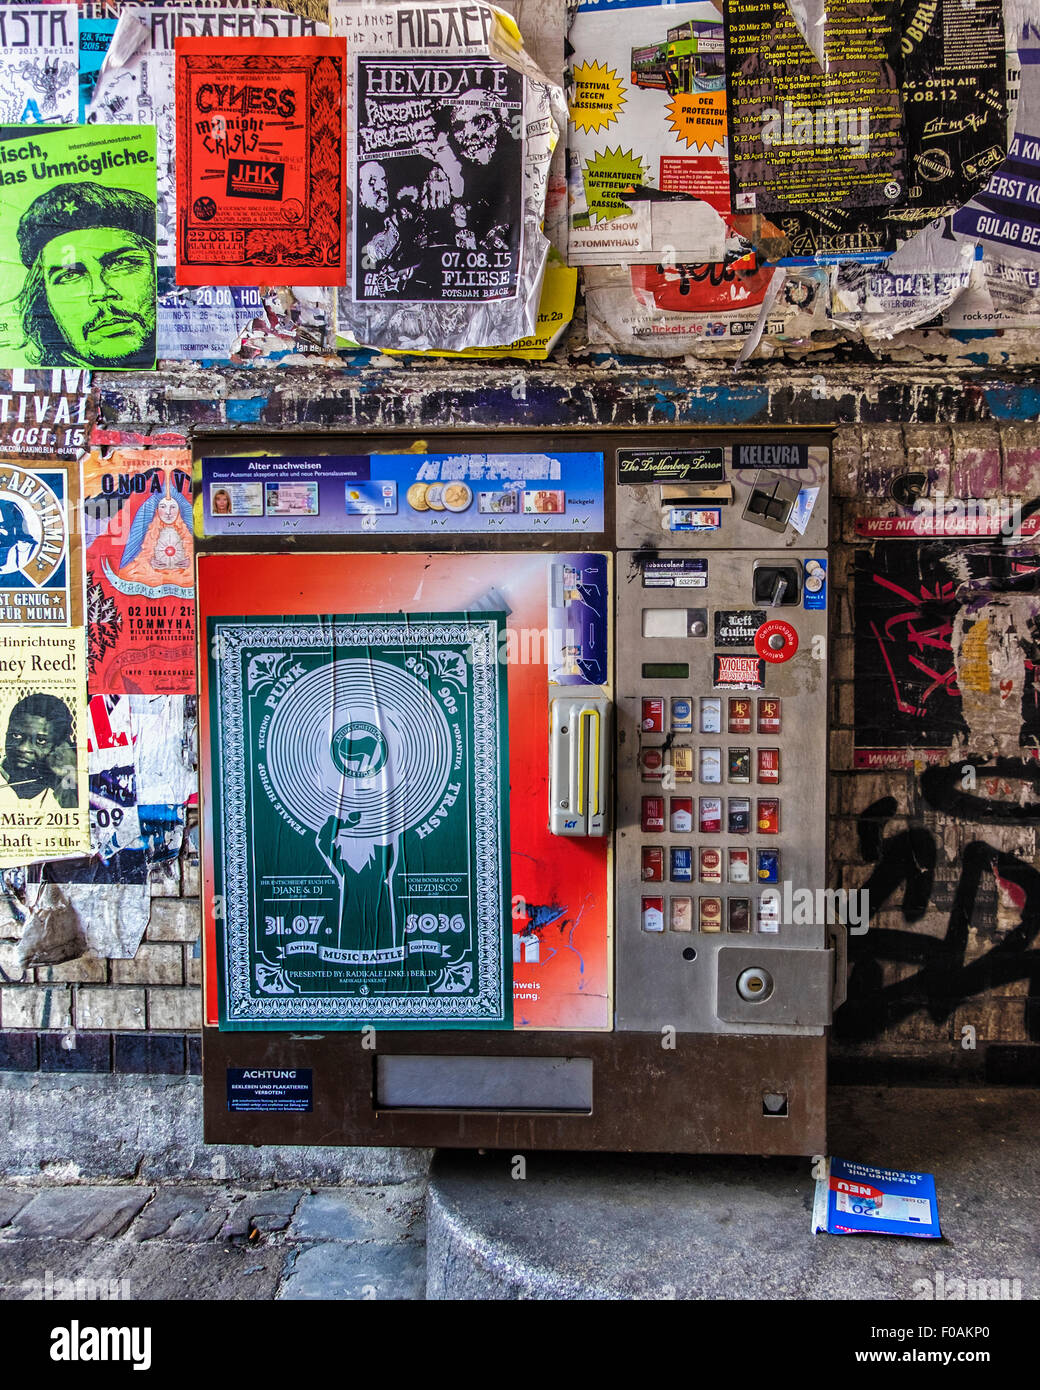 Old cigarette dispensing machine requiring ID cards - Berlin Kreuzberg, Tommy Weissbaecker Haus, Tommy House - Stock Image